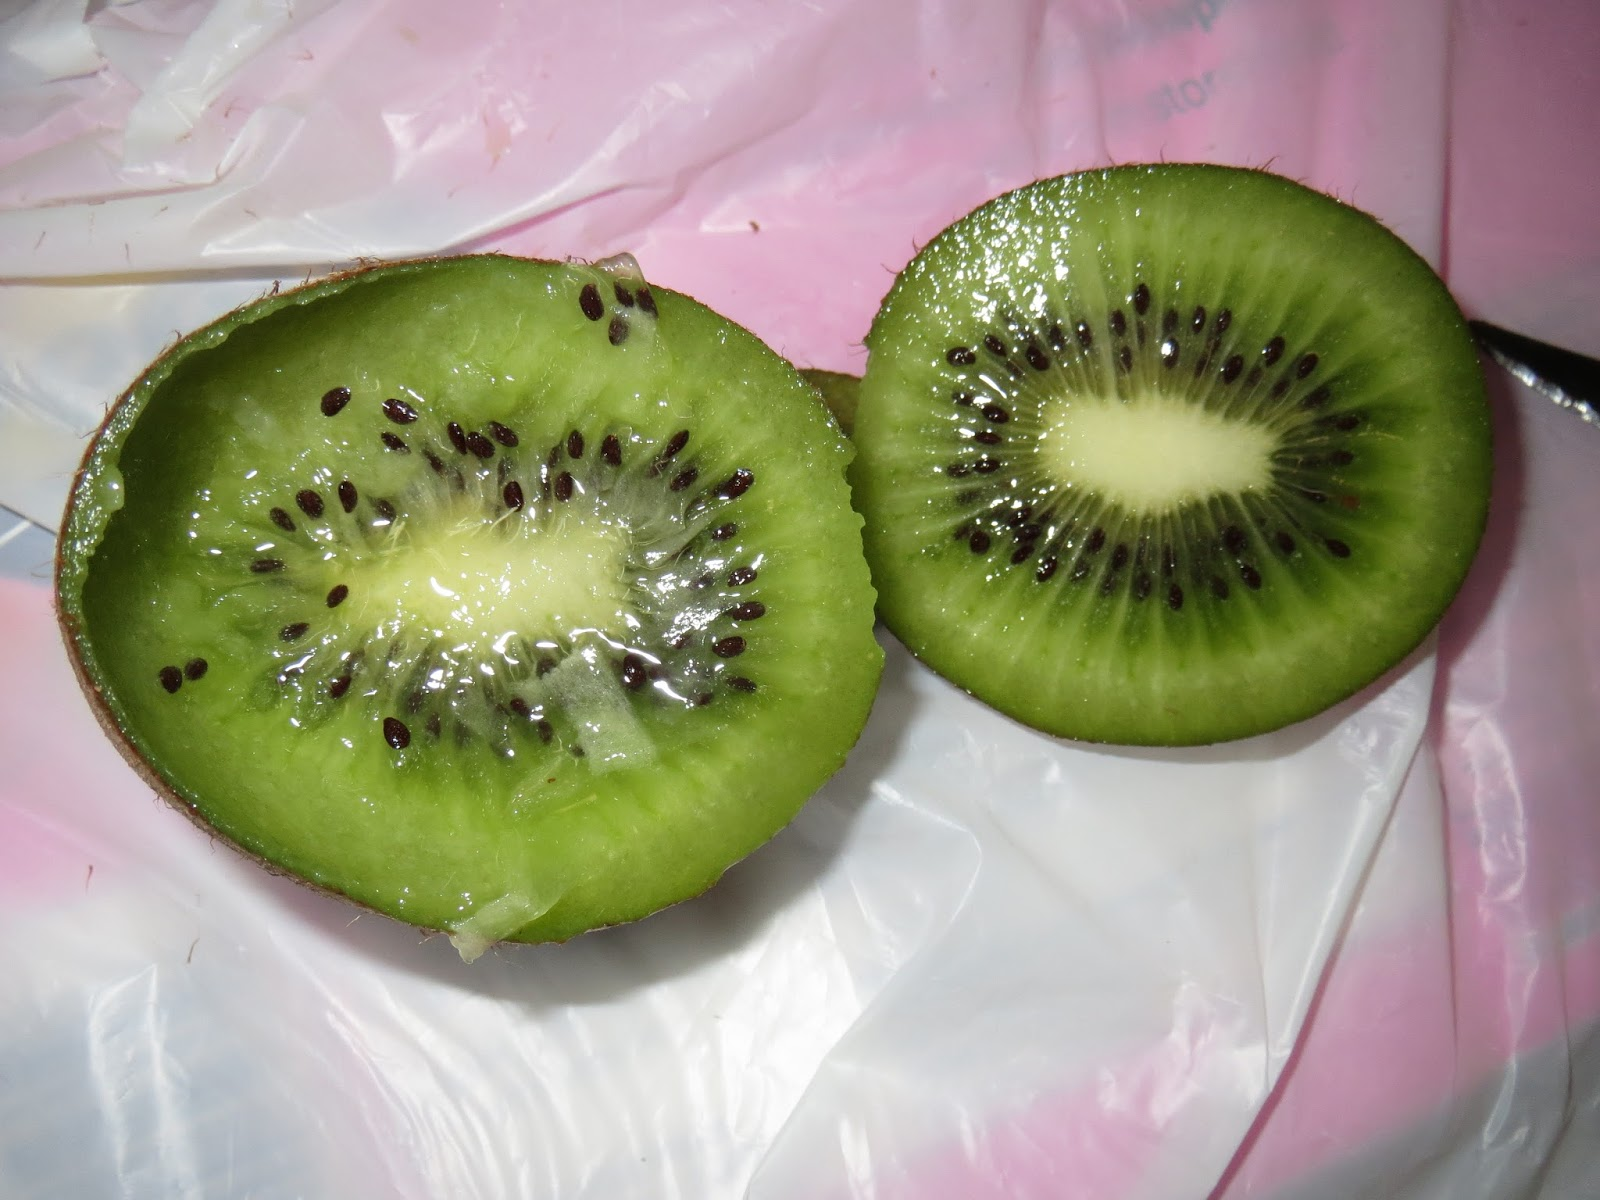 Mighties Kiwis Are Fucking Terrifying ~ THE INTERNET IS IN ...